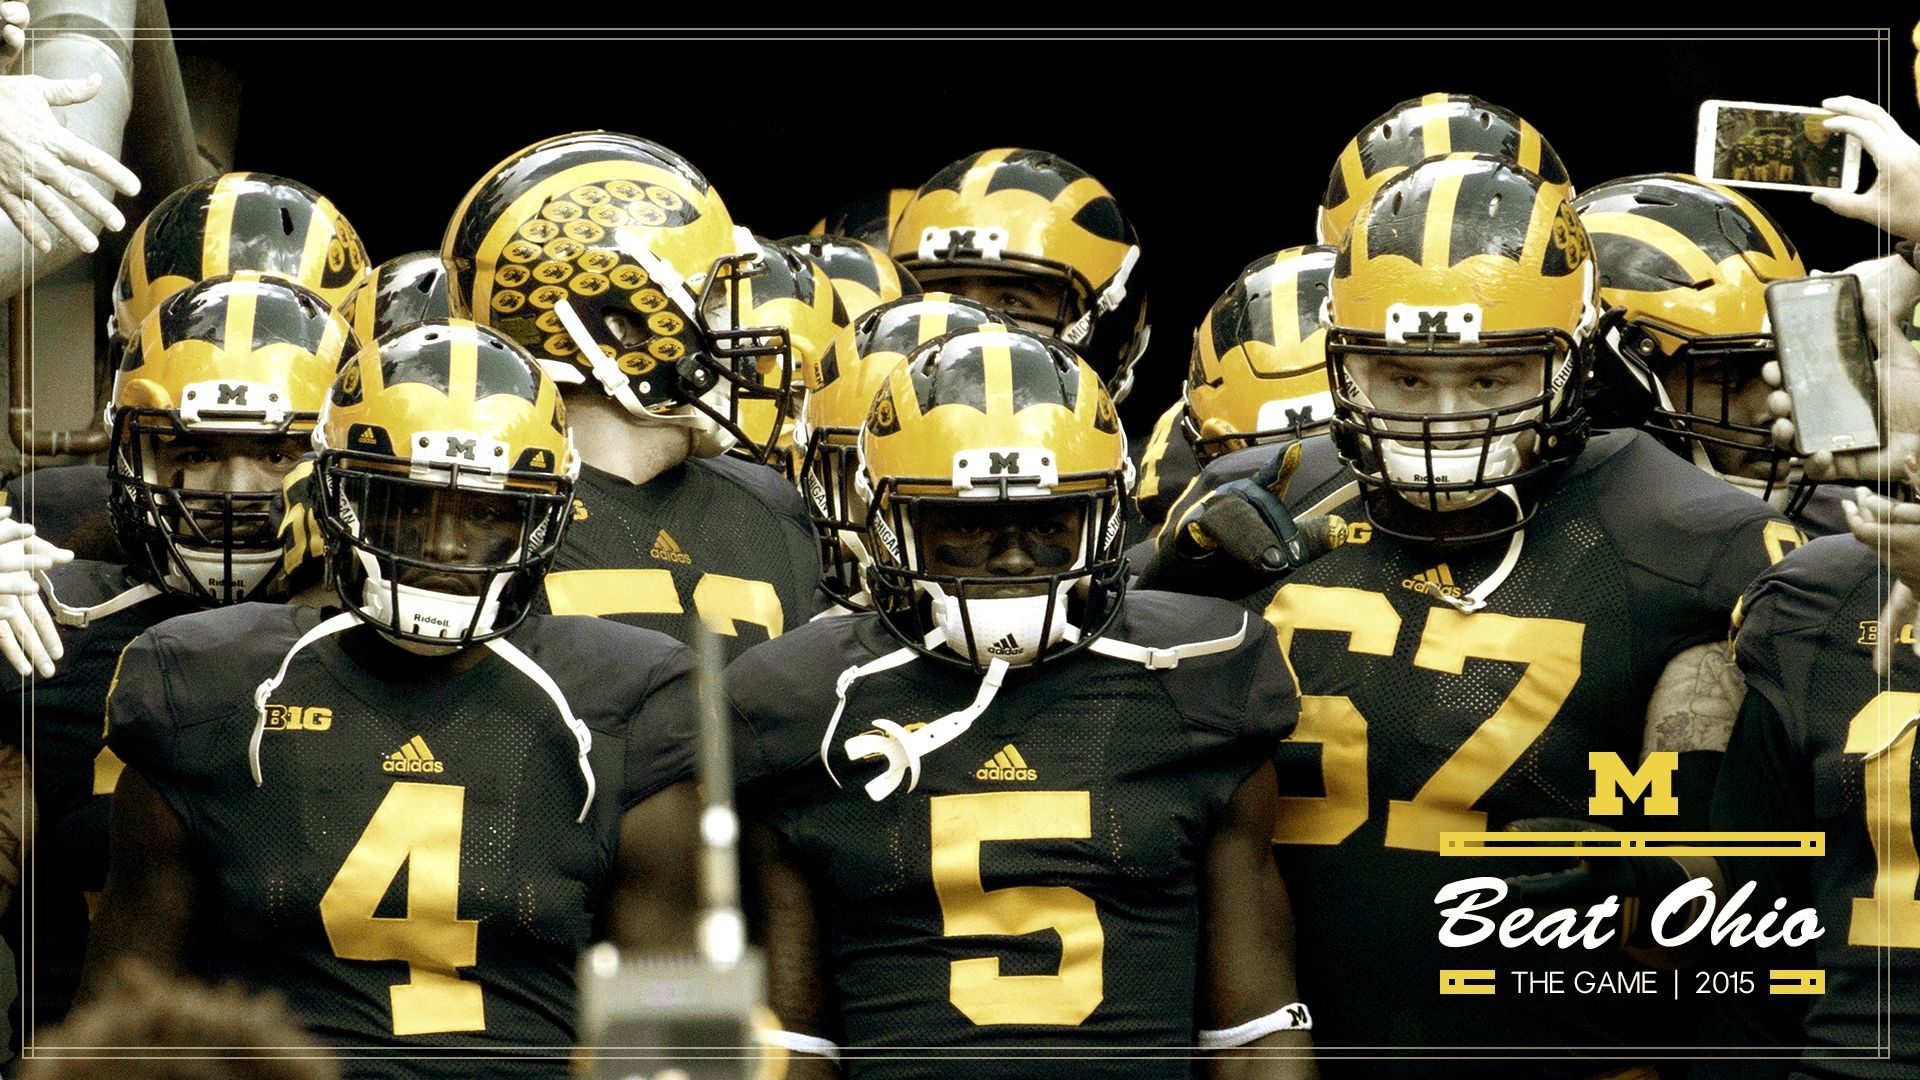 1920x1080 Michigan Football Wallpaper x